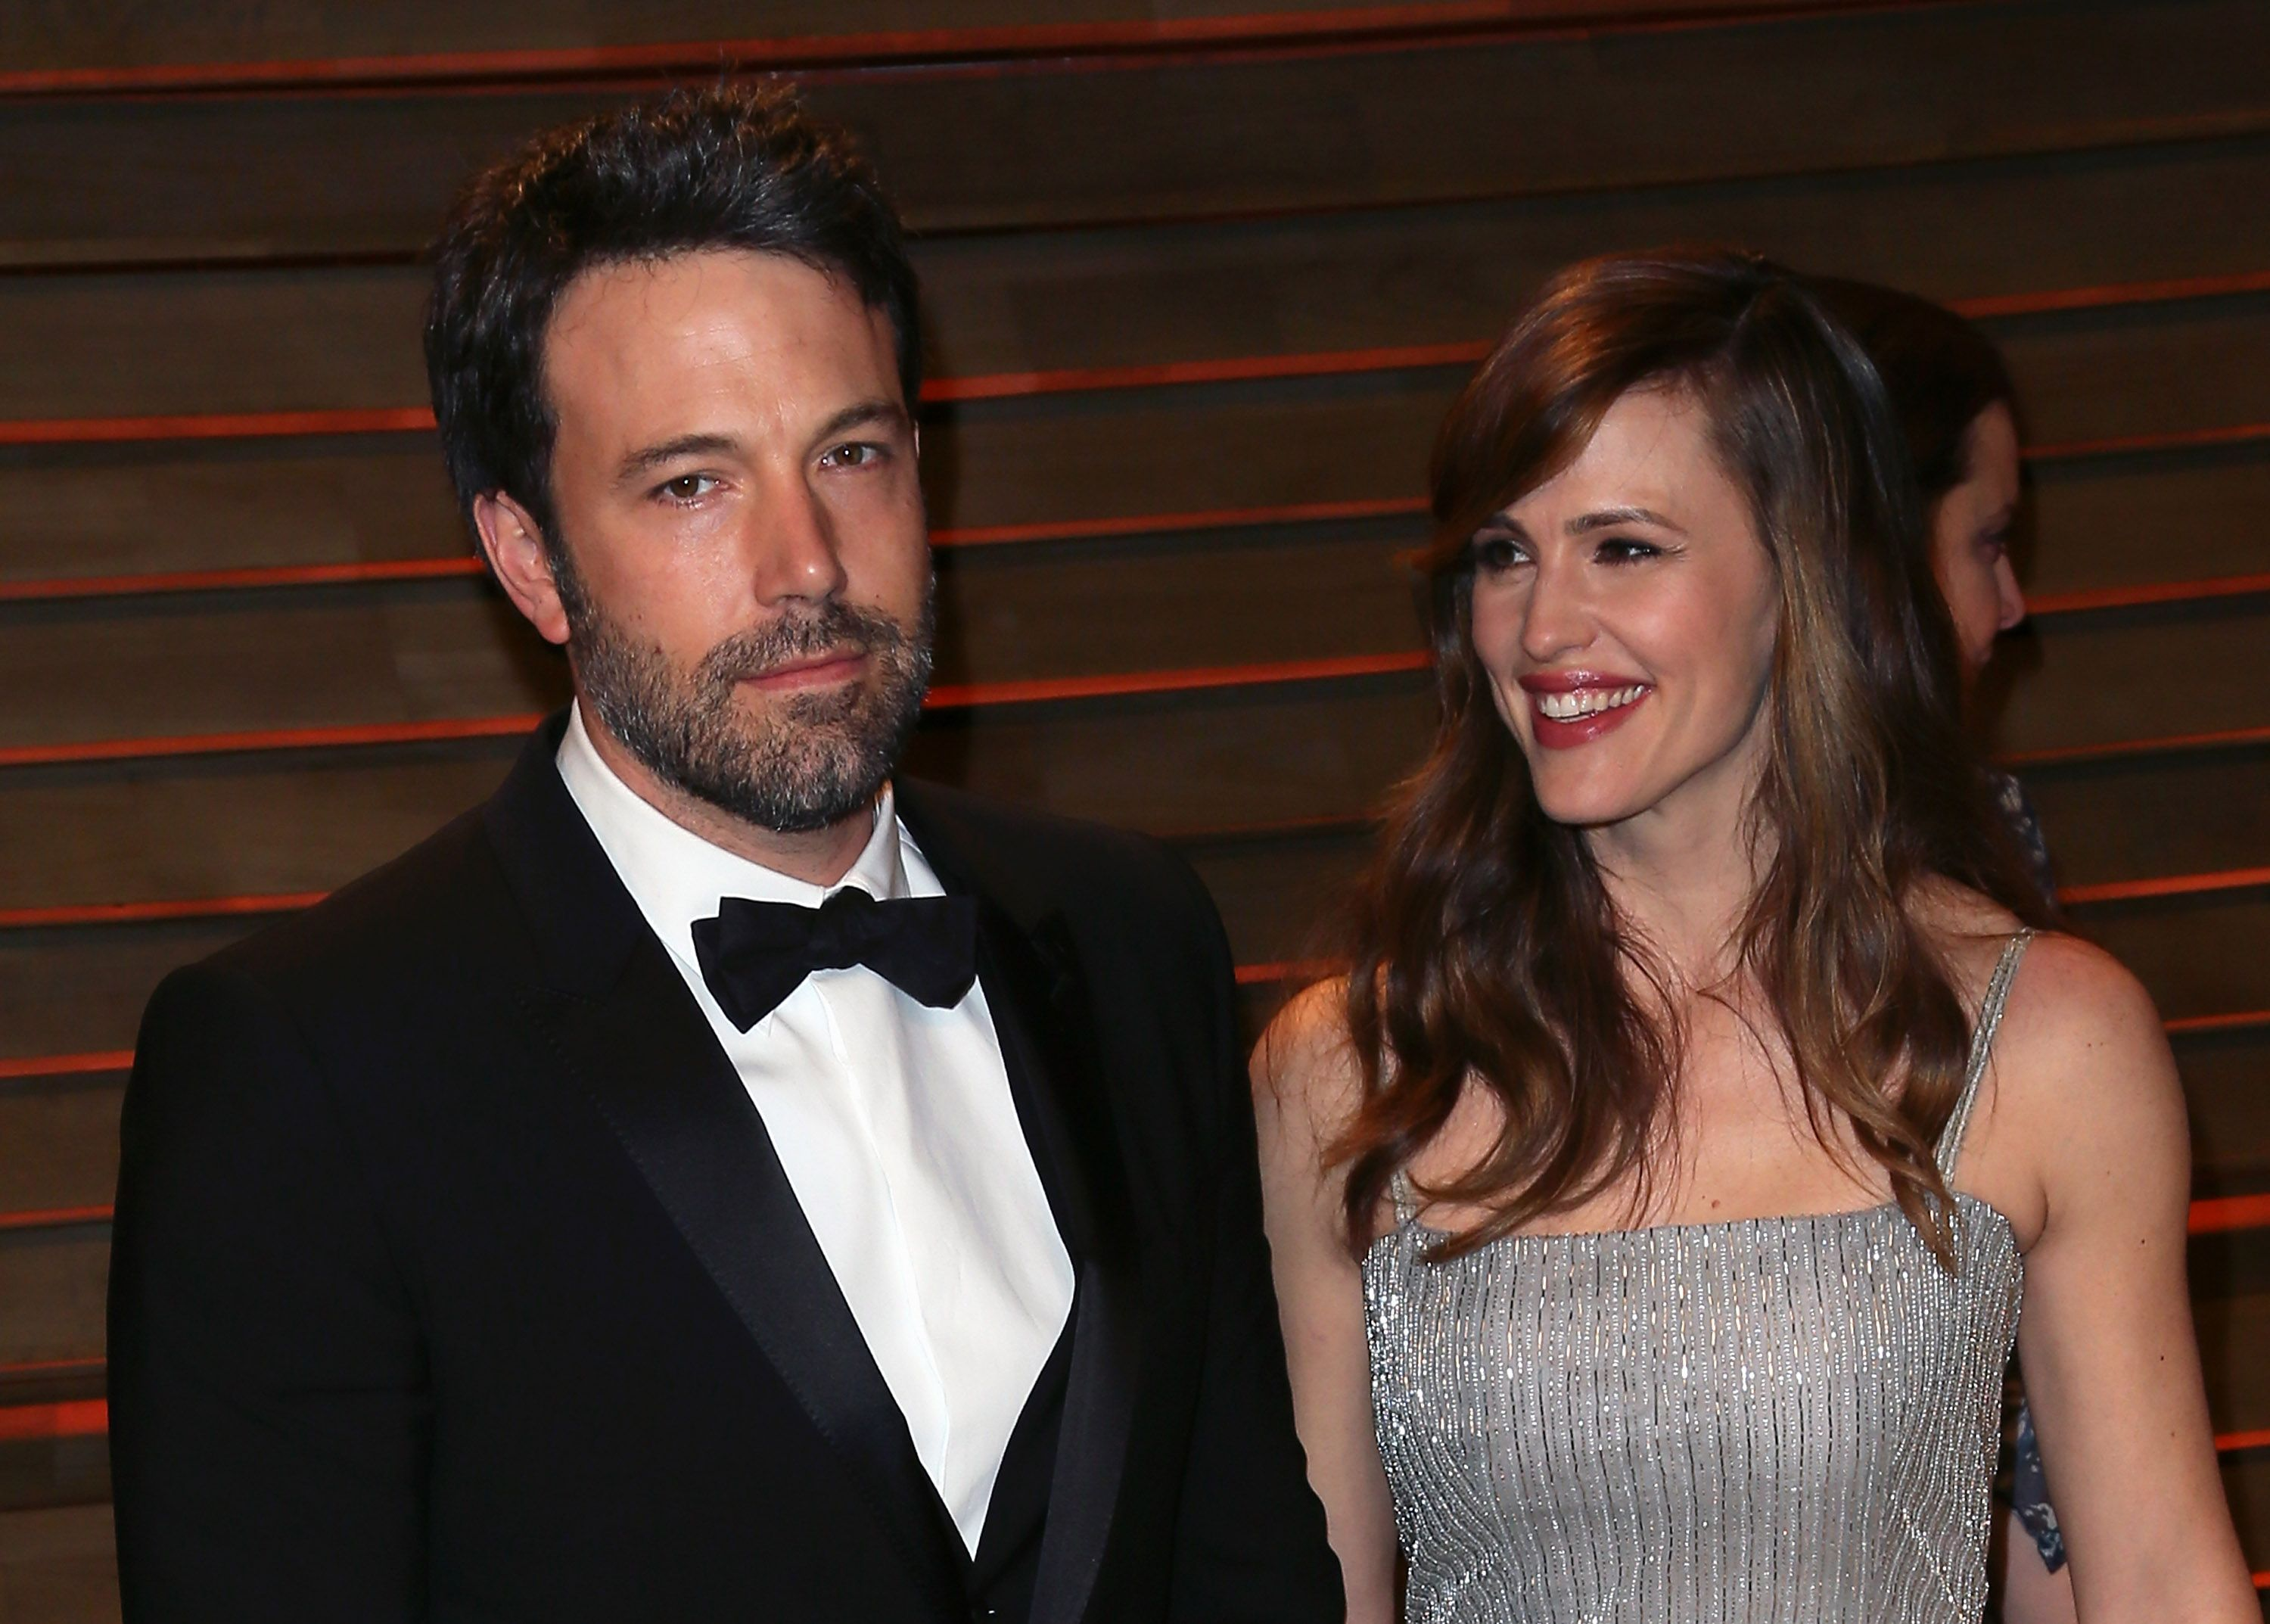 Ben Affleck and Jennifer Garner attend the 2014 Vanity Fair Oscar Party hosted by Graydon Carter on March 2, 2014. | Photo: Getty Images